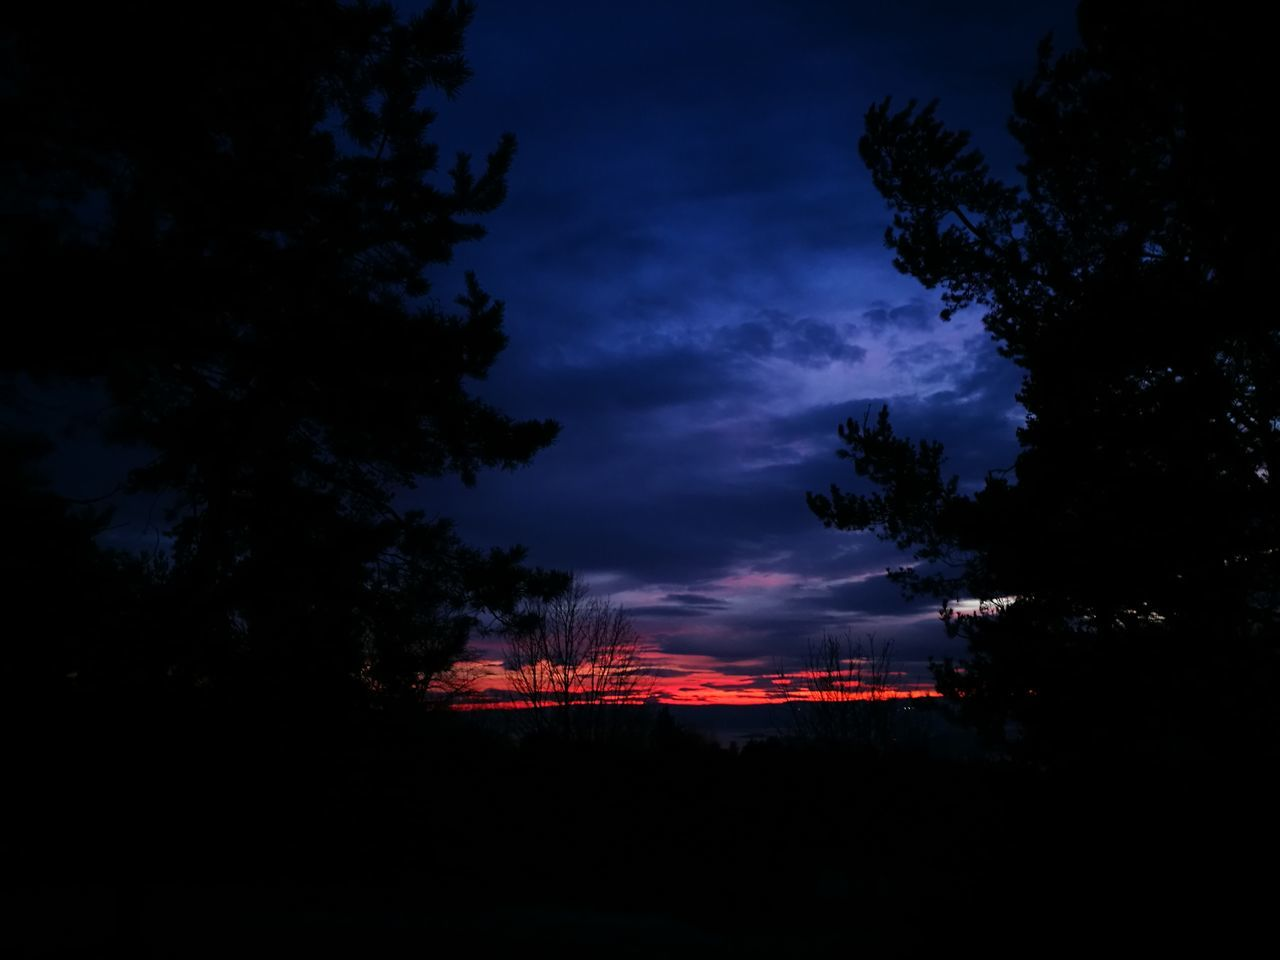 Night Sky No People Tree Beauty In Nature Outdoors Nature Cloud - Sky Lightning Sunset_captures Lights Multi Colored Vibrant Color Norway Colors Lithuanian Girl Power In Nature Landscape Dramatic Sky Purple Nature Beauty In Nature My Year My View Red